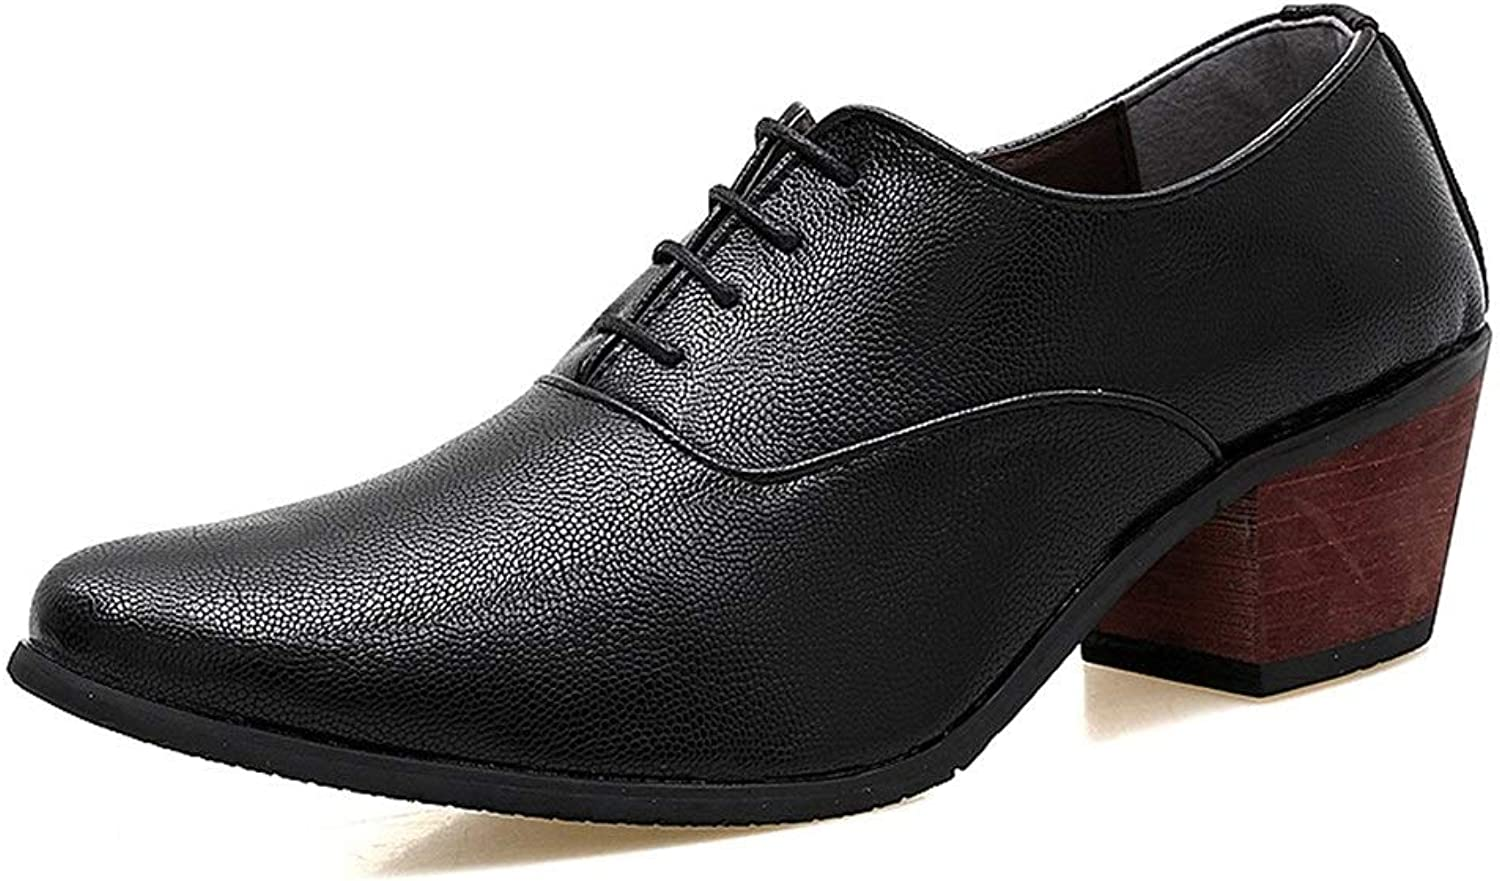 Easy Go Shopping Men's Oxford shoes Lace Up Formal shoes PU Leather Simple Pure color Thick With Higher Cricket shoes (color   Black, Size   8.5 UK)